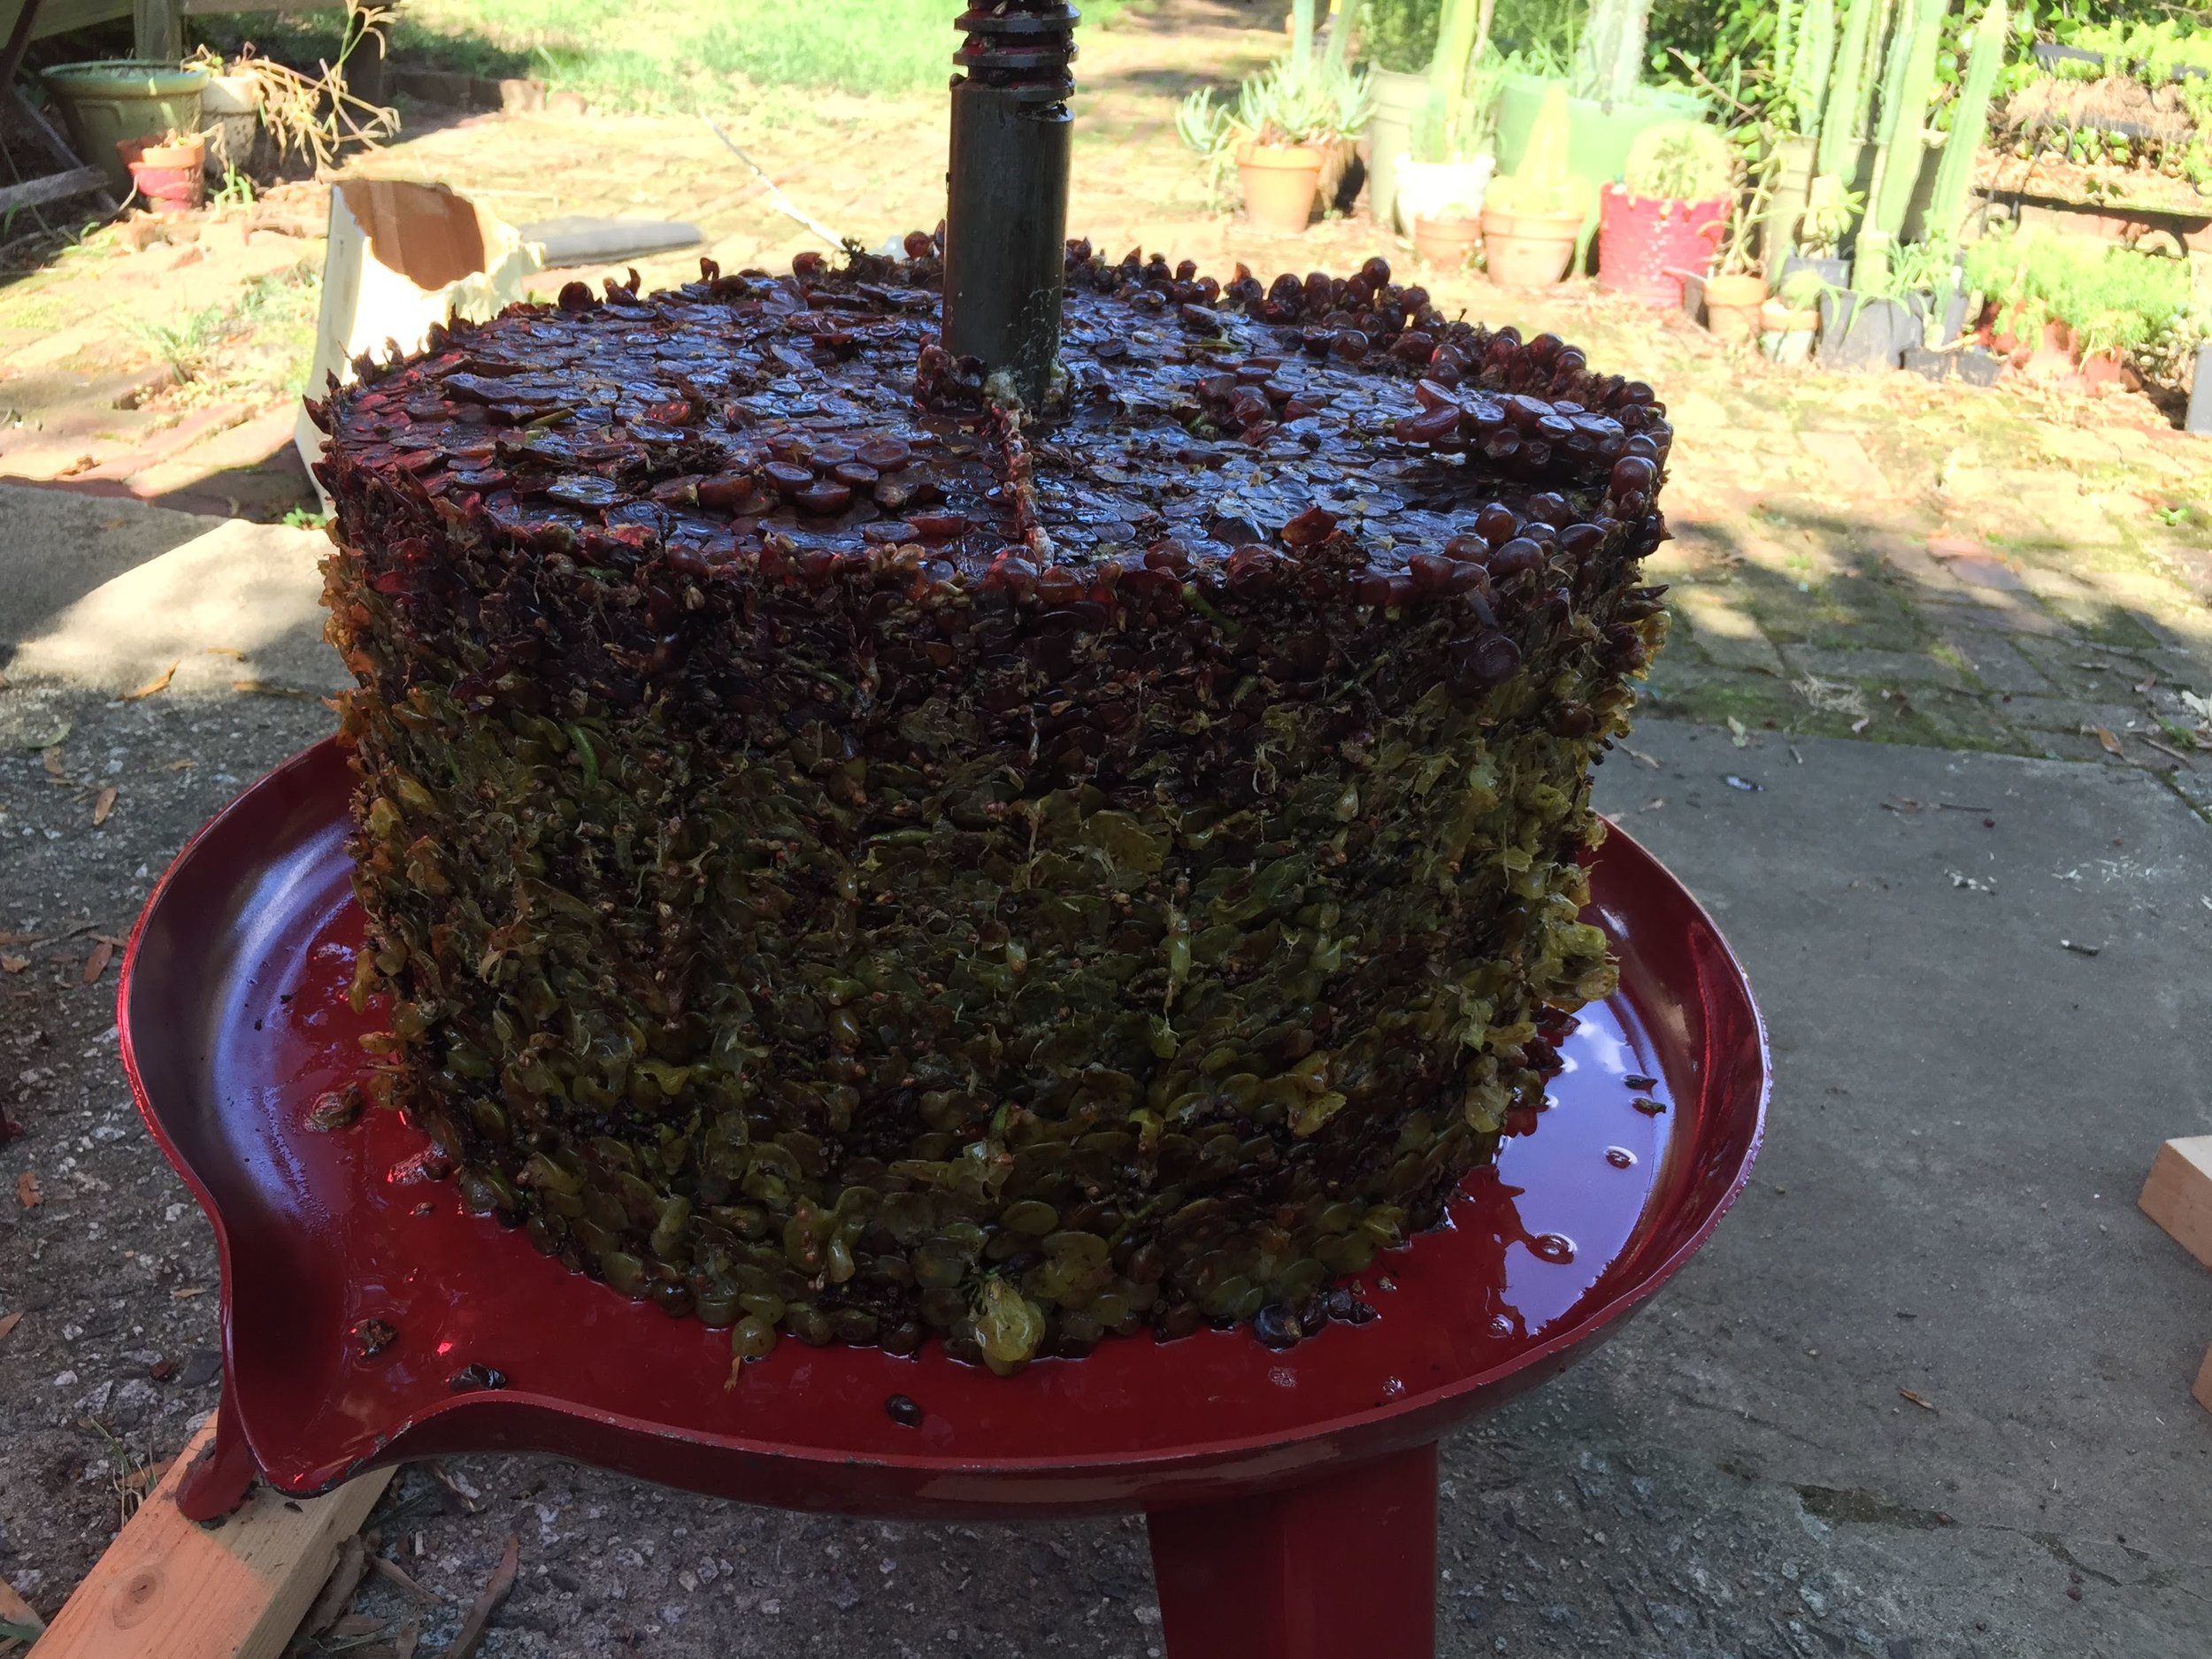 This is what 100 pounds of grapes looks like once it's been pressed